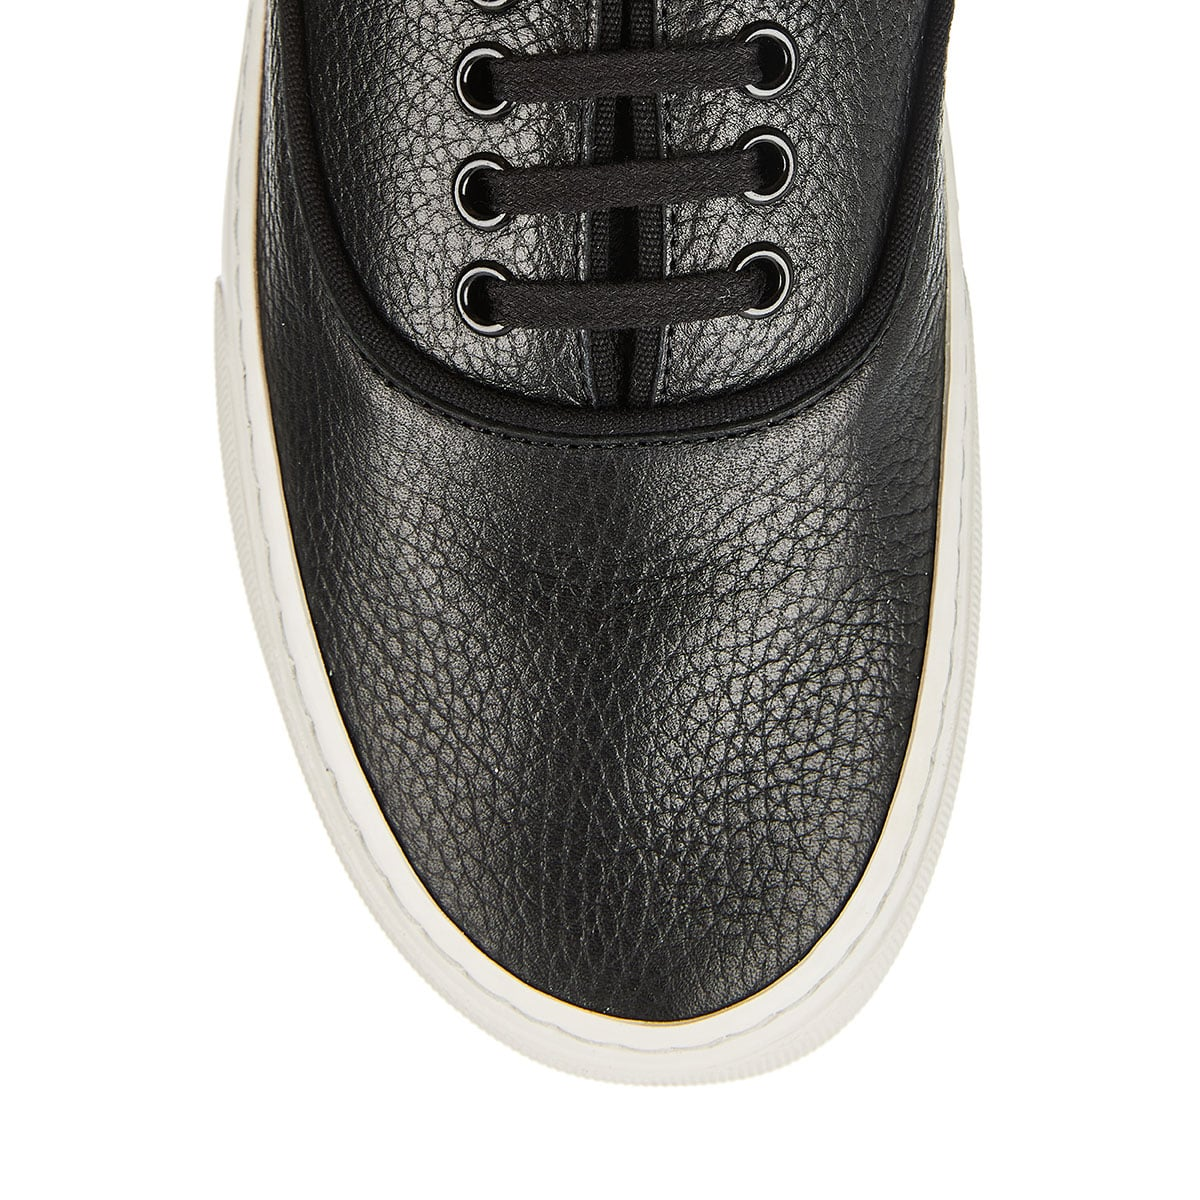 Venice leather sneakers